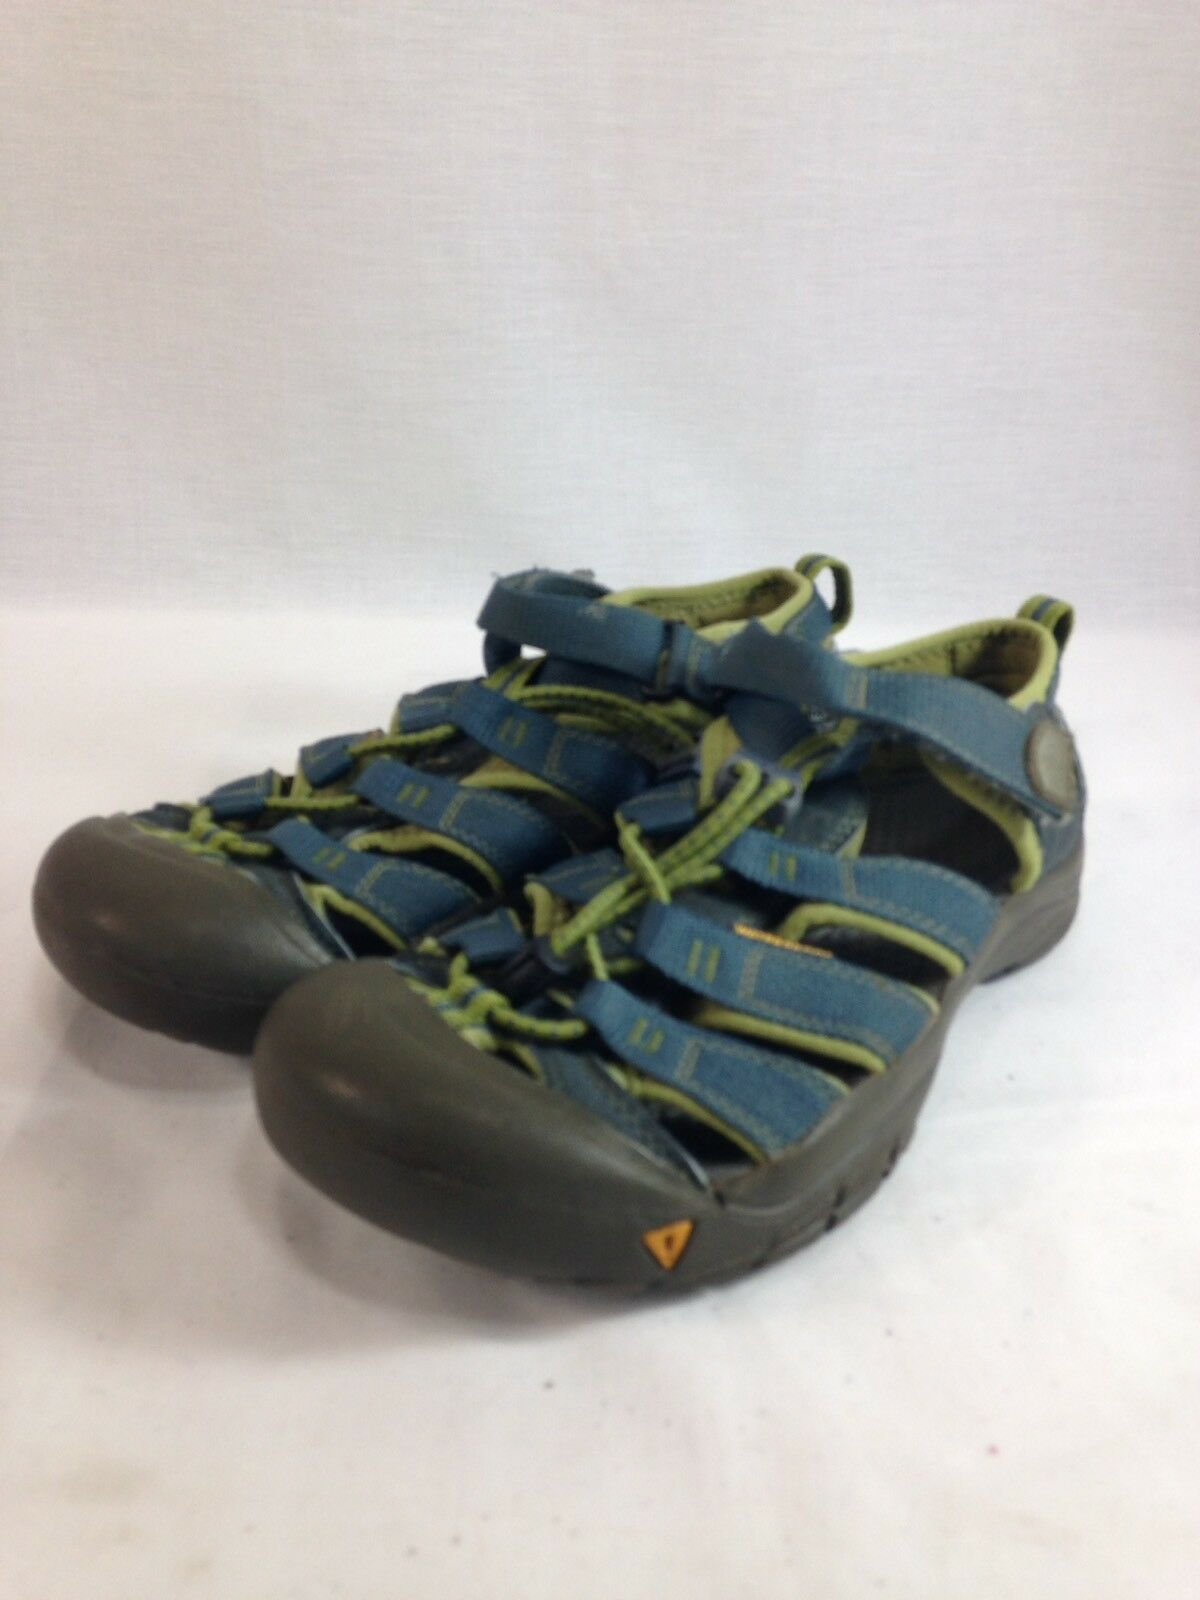 Keen Newport Sport Sandals shoes Womens 7.5 Youth 5 bluee Waterproof Hiking Trail